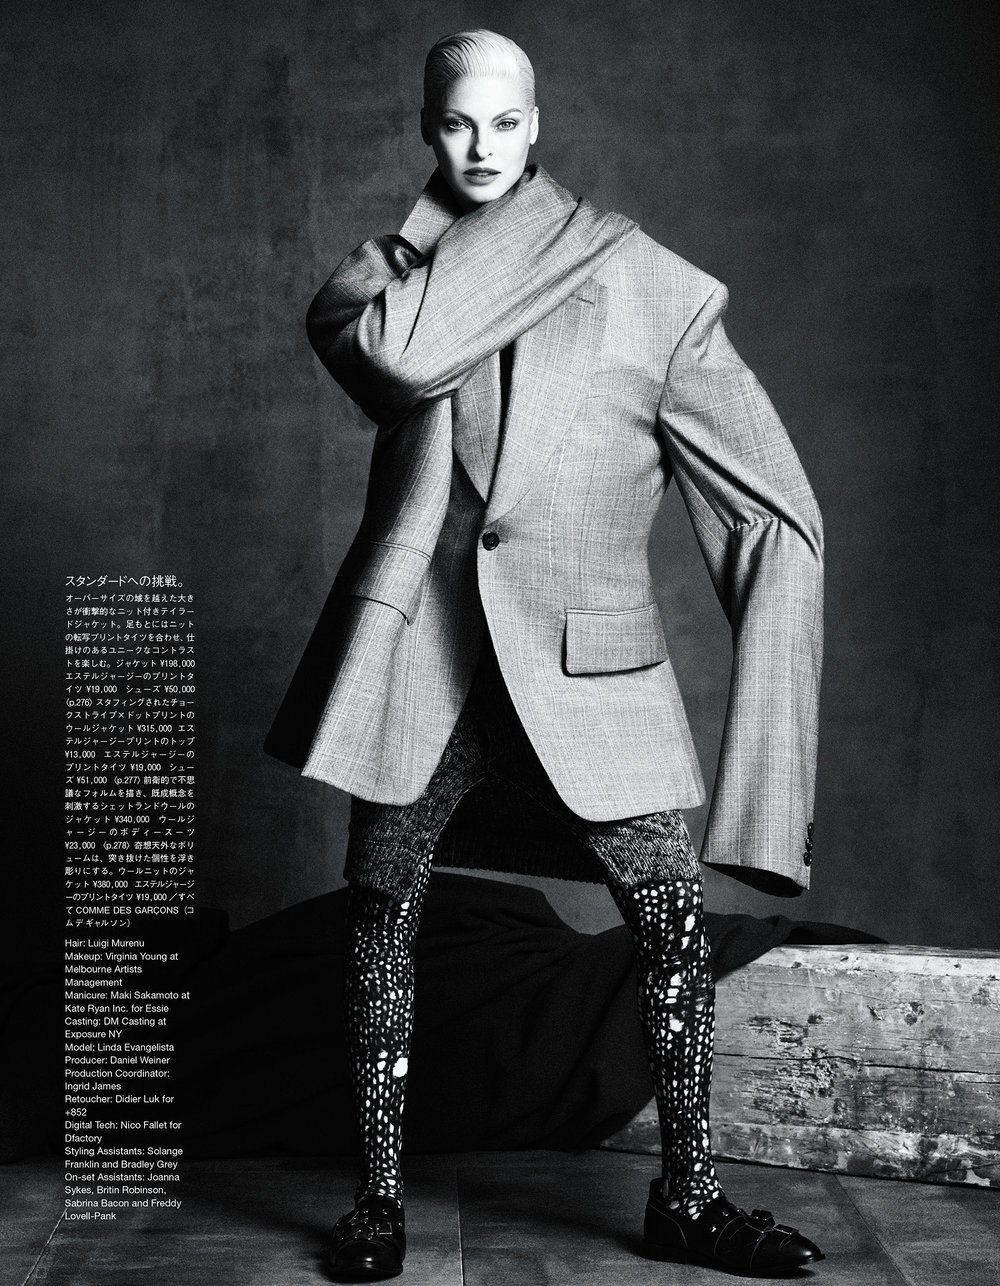 Giovanna-Battaglia-The-Development-Of-Form-Vogue-Japan-Luigi-Iango-V181_279_200.jpg